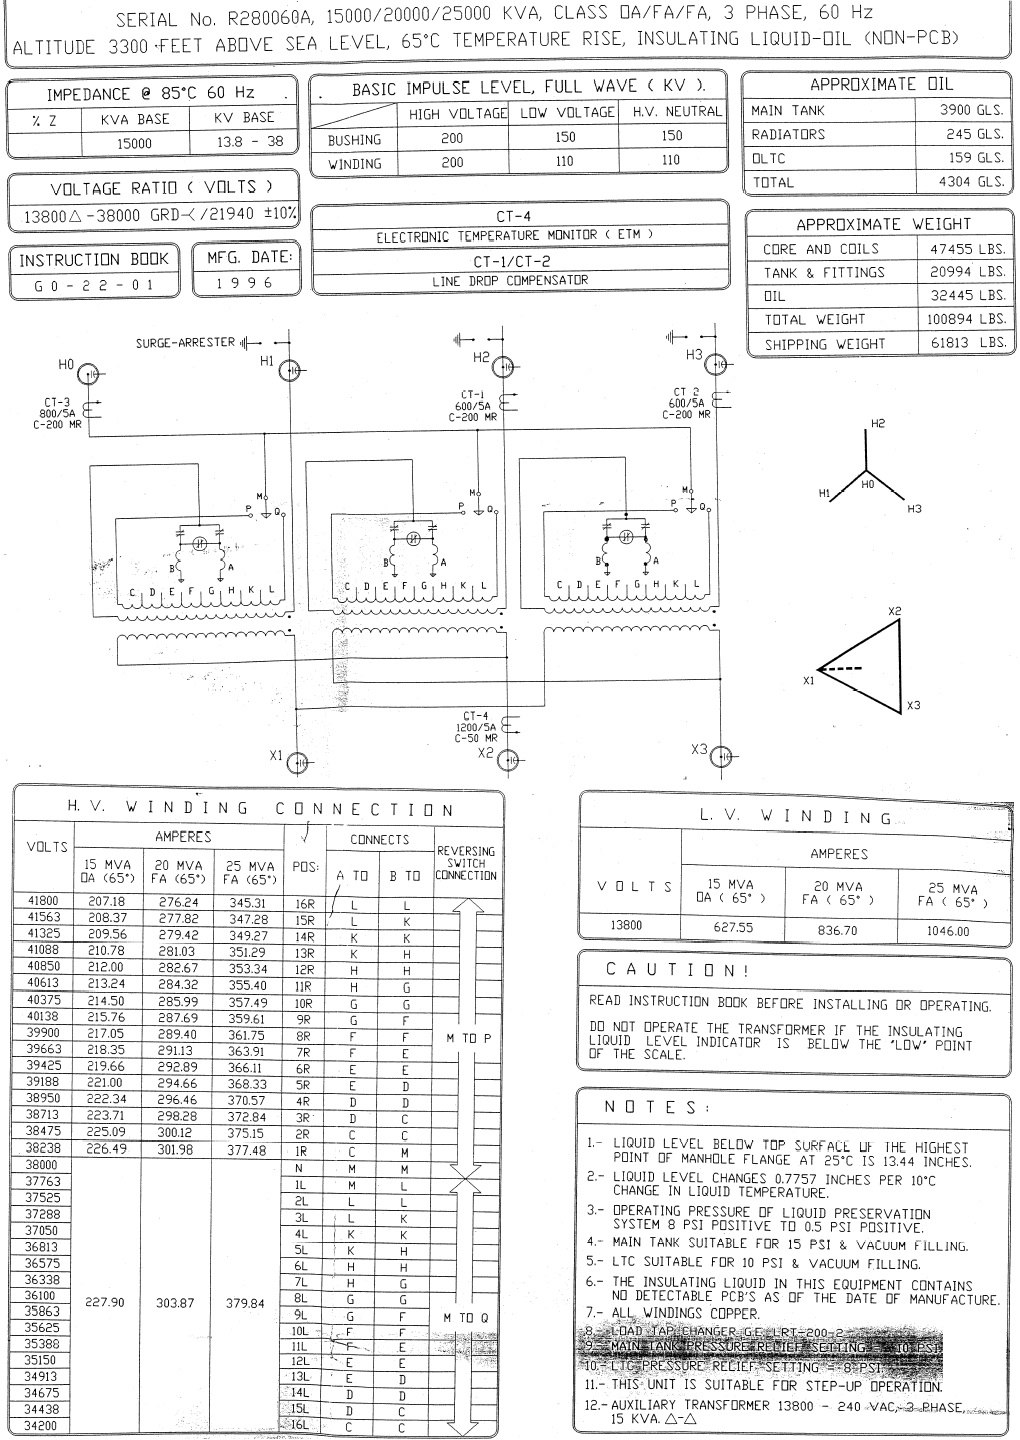 Ge Transformers Wiring Diagrams 208v Transformer Diagram Engineering Photos Videos And Articels Search Engine Rh Emadrlc Blogspot Com With Fan Substation